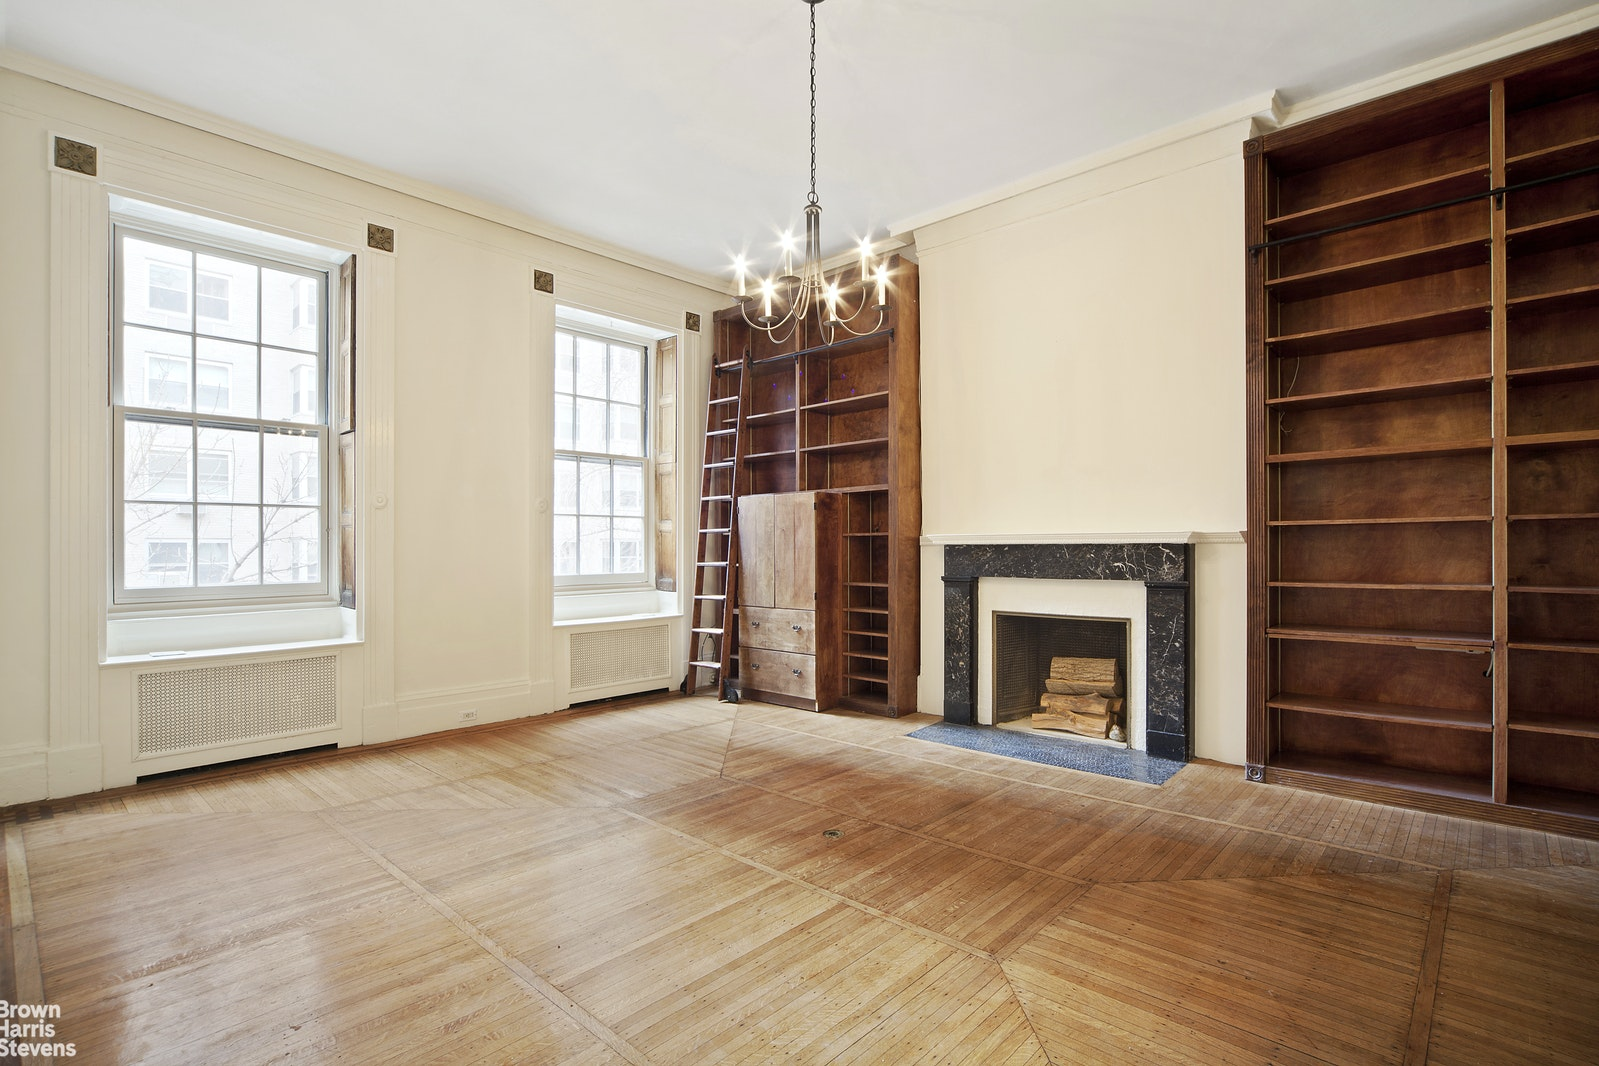 9 East 9th Street, Central Village, NYC, 10003, $10,995,000, Property For Sale, Halstead Real Estate, Photo 18